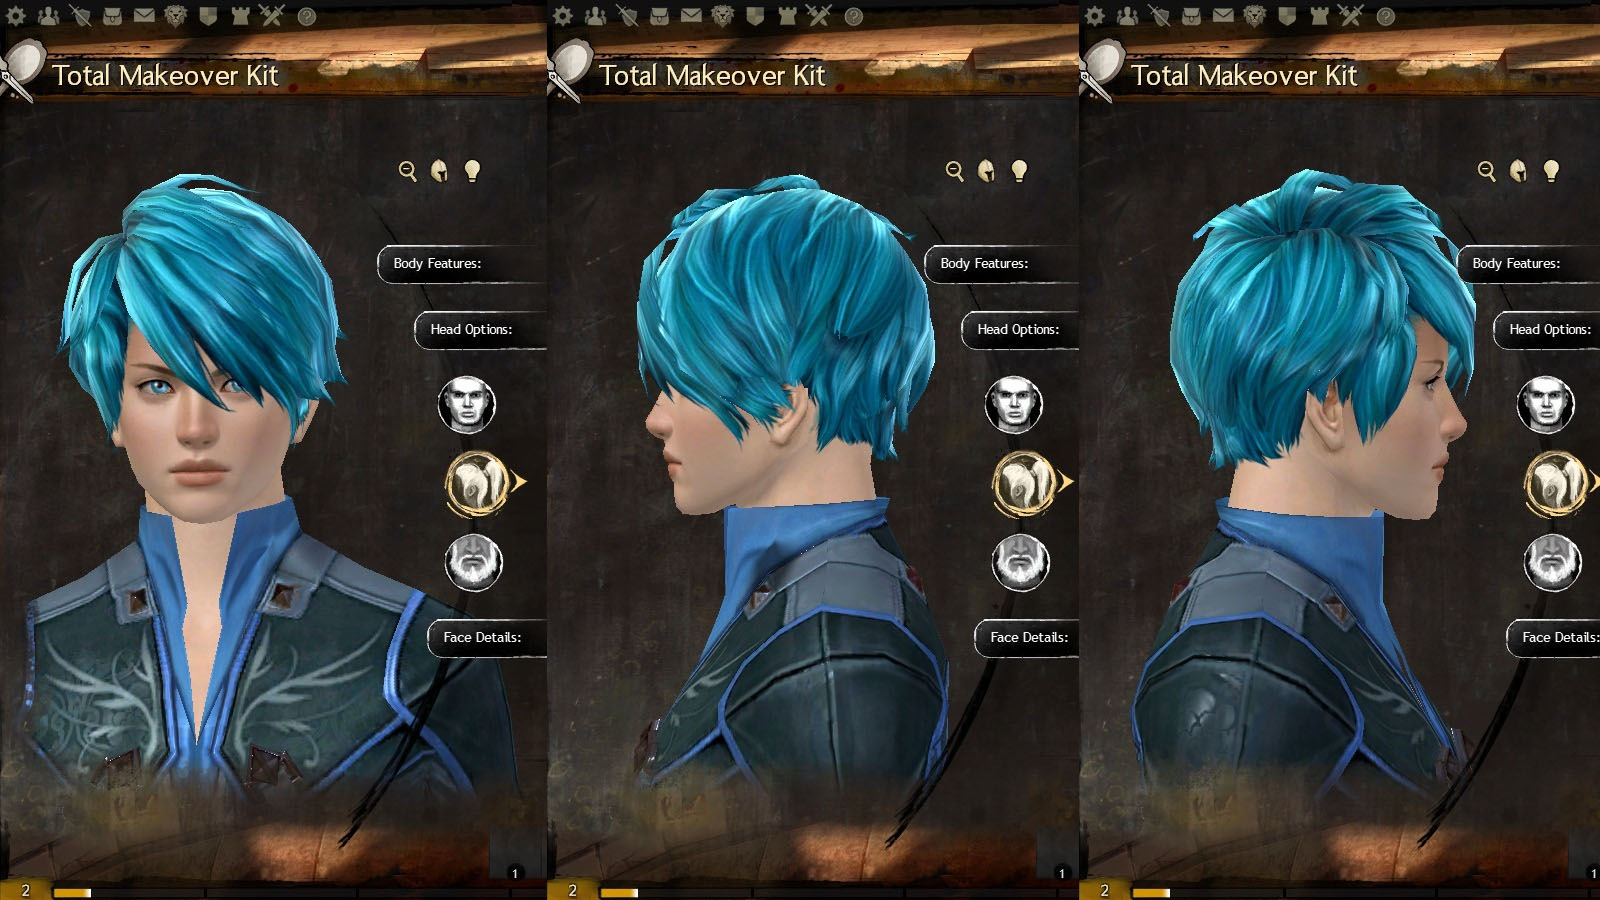 New Hairstyles In Todays Build